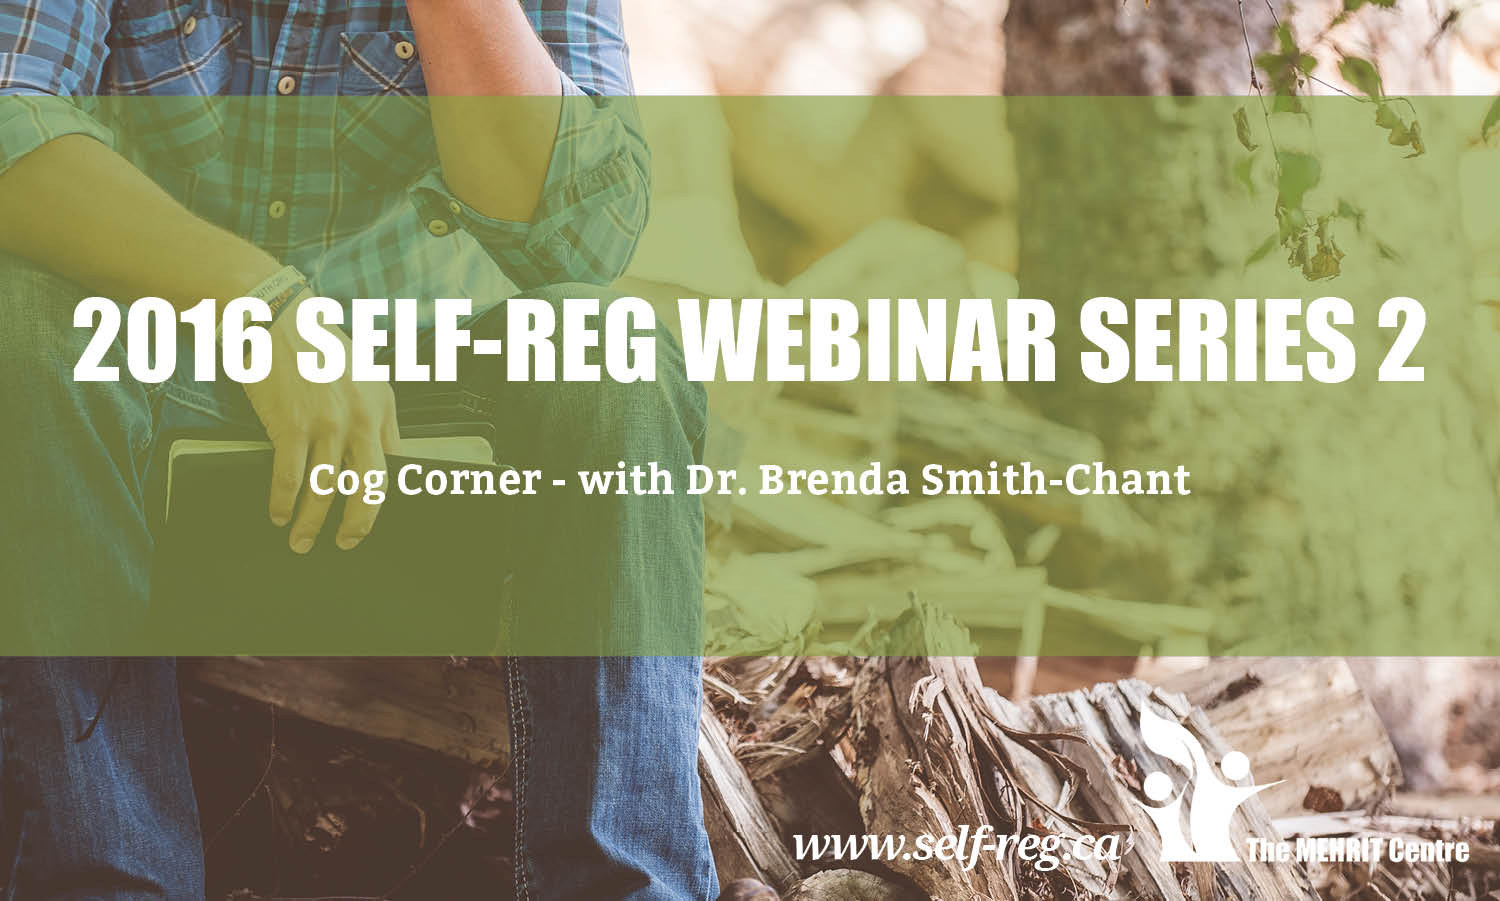 Self-Reg Webinars 2016 - Series 2 with Dr. Brenda Smith-Chant: Cog Corner -  Individual Webinars